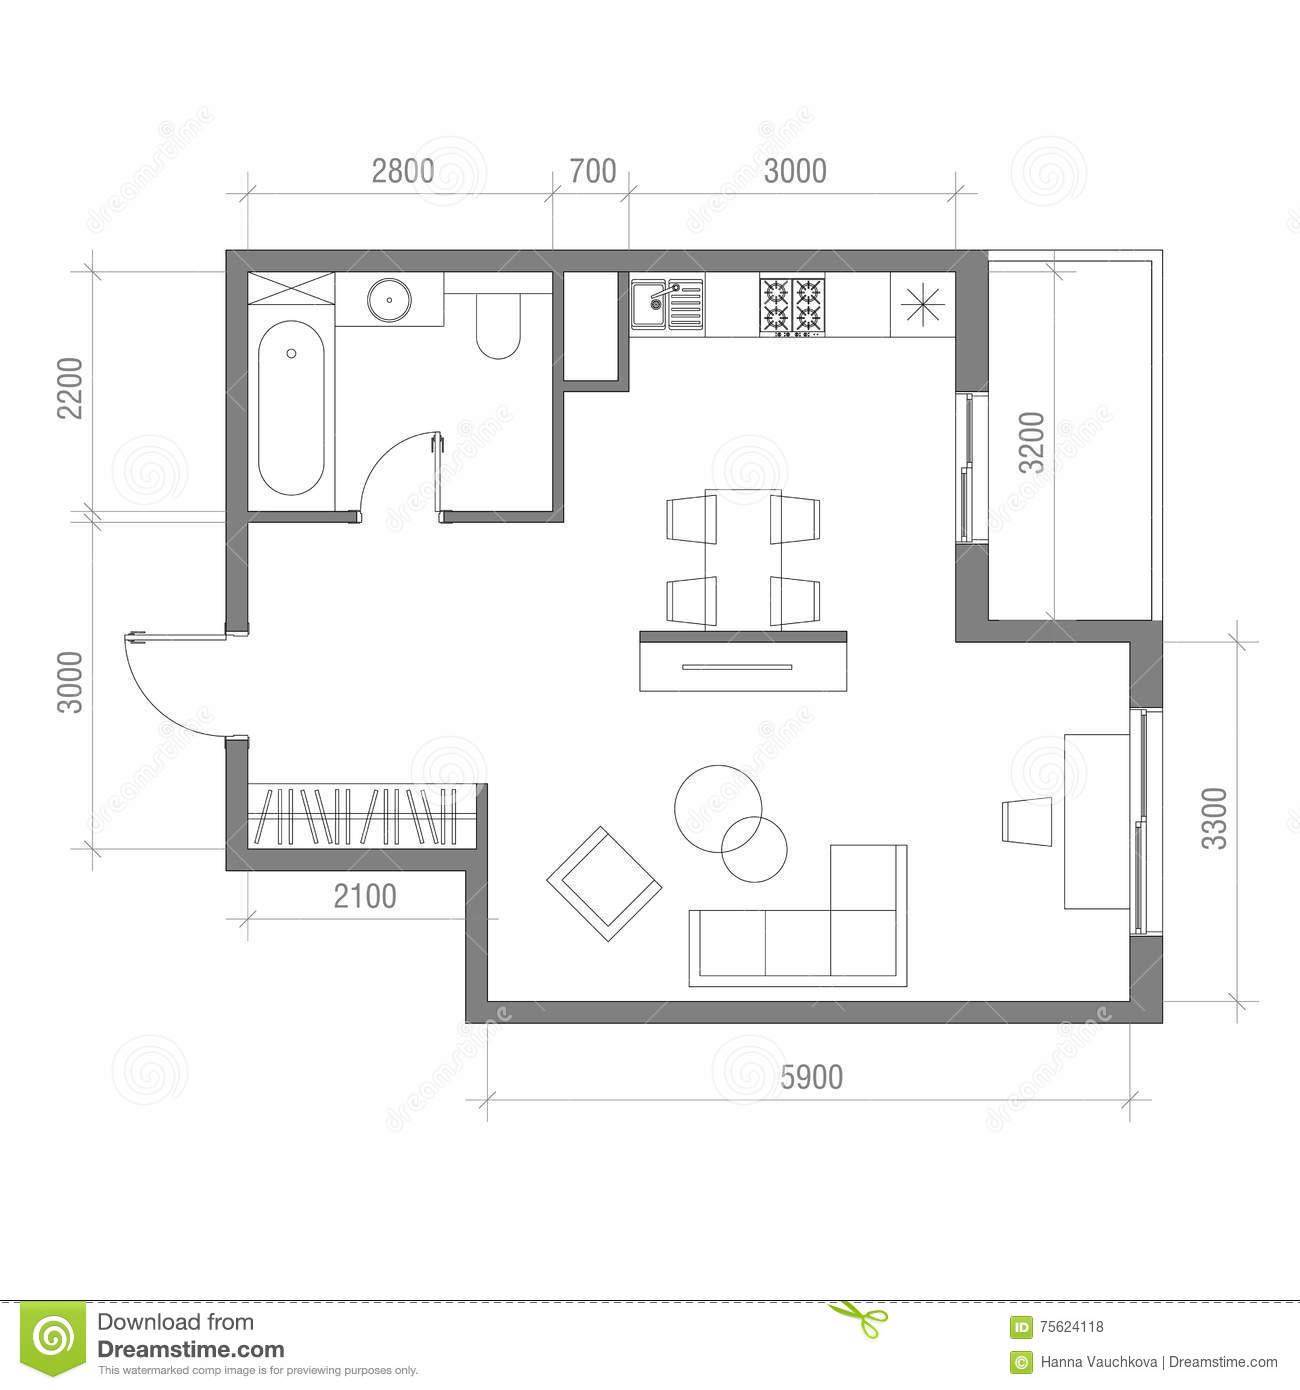 Architectural floor plan with dimensions studio apartment for Small living room floor plan